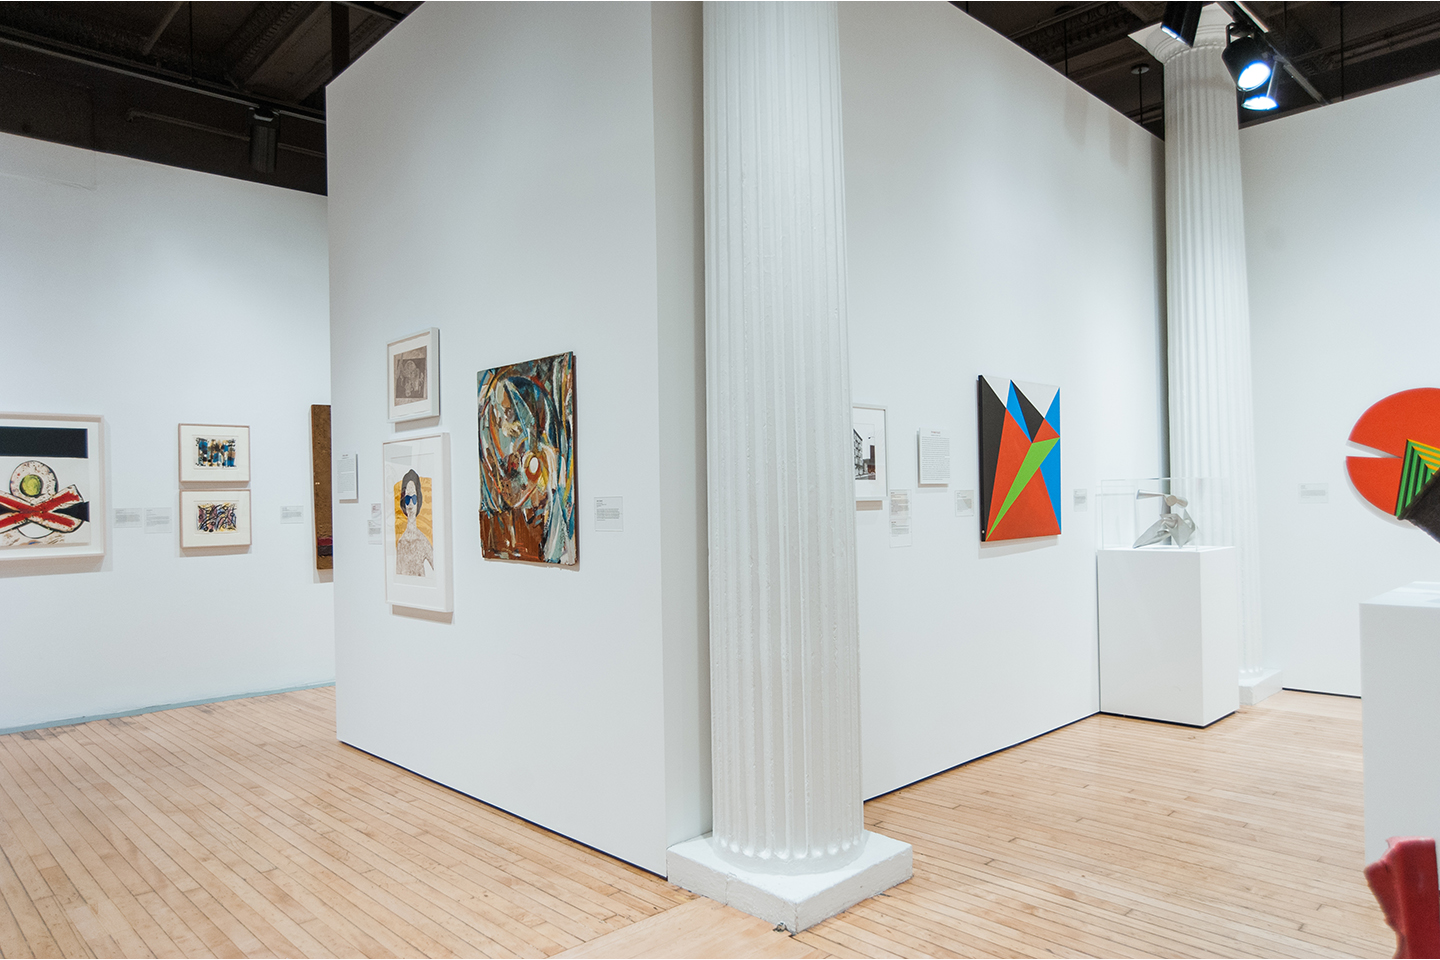 How to Run an Art Gallery recommend